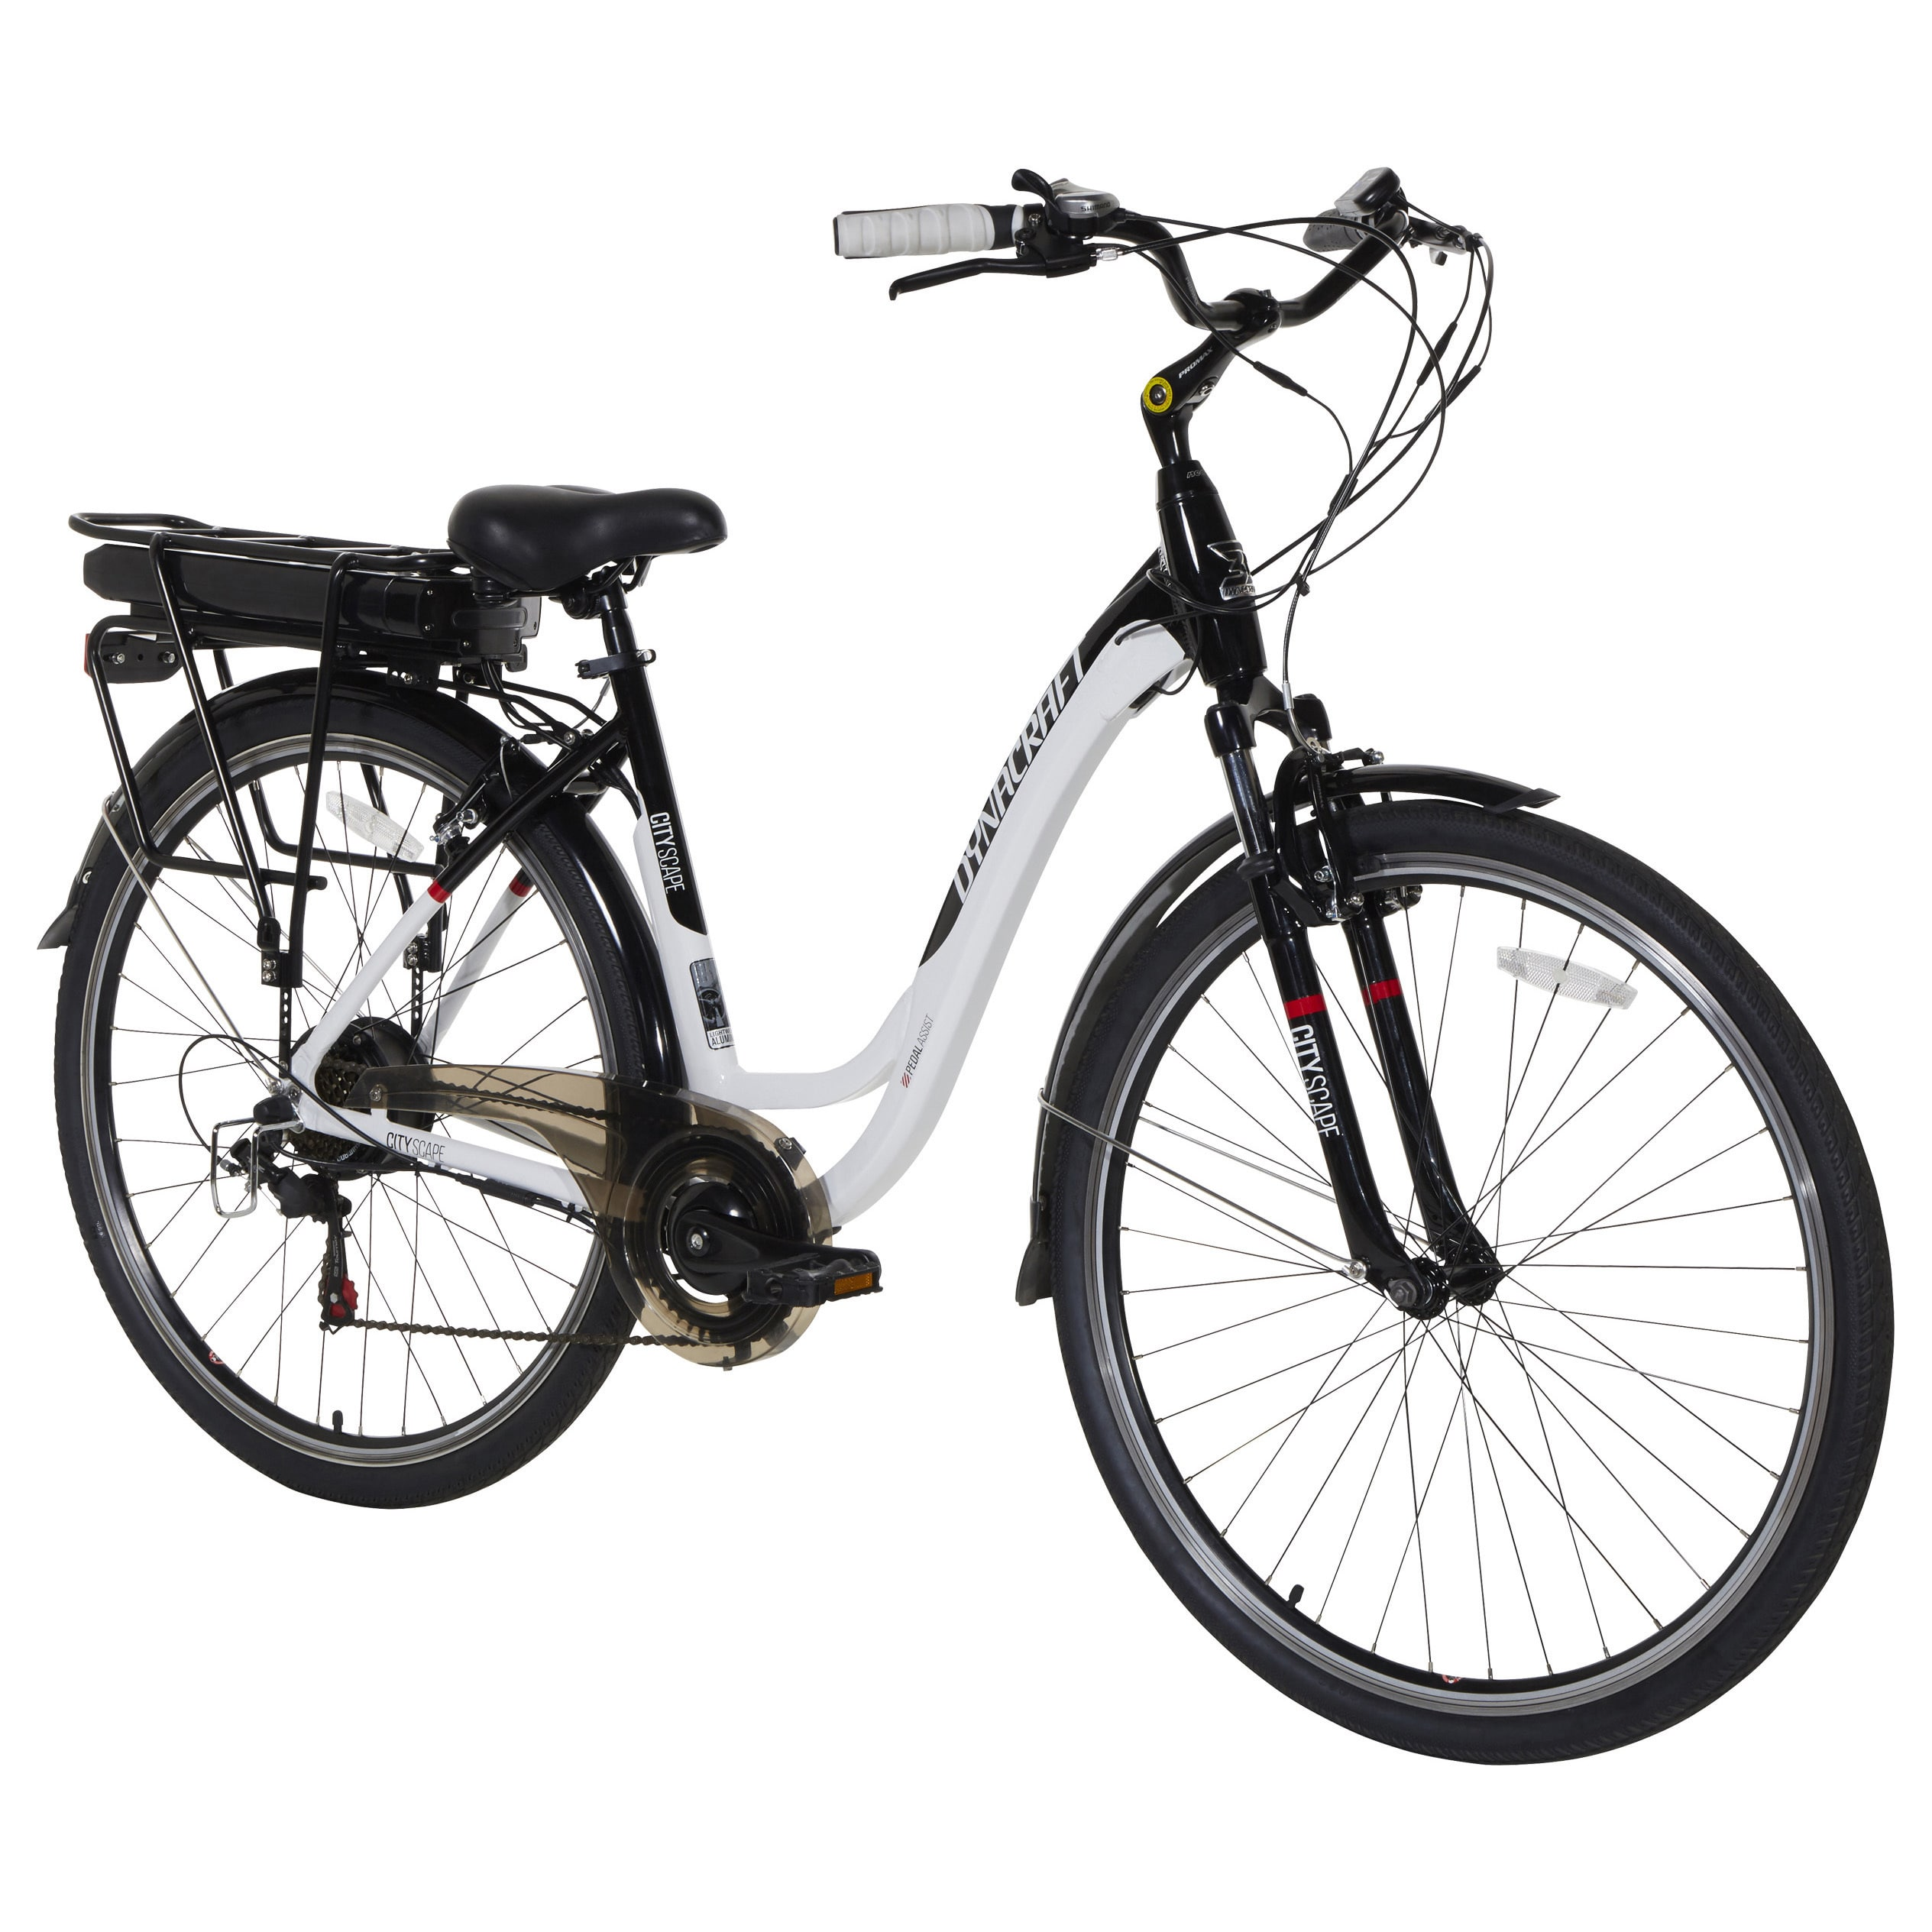 "26"" Dynacraft 700C City Scape Pedal Assist Bike"